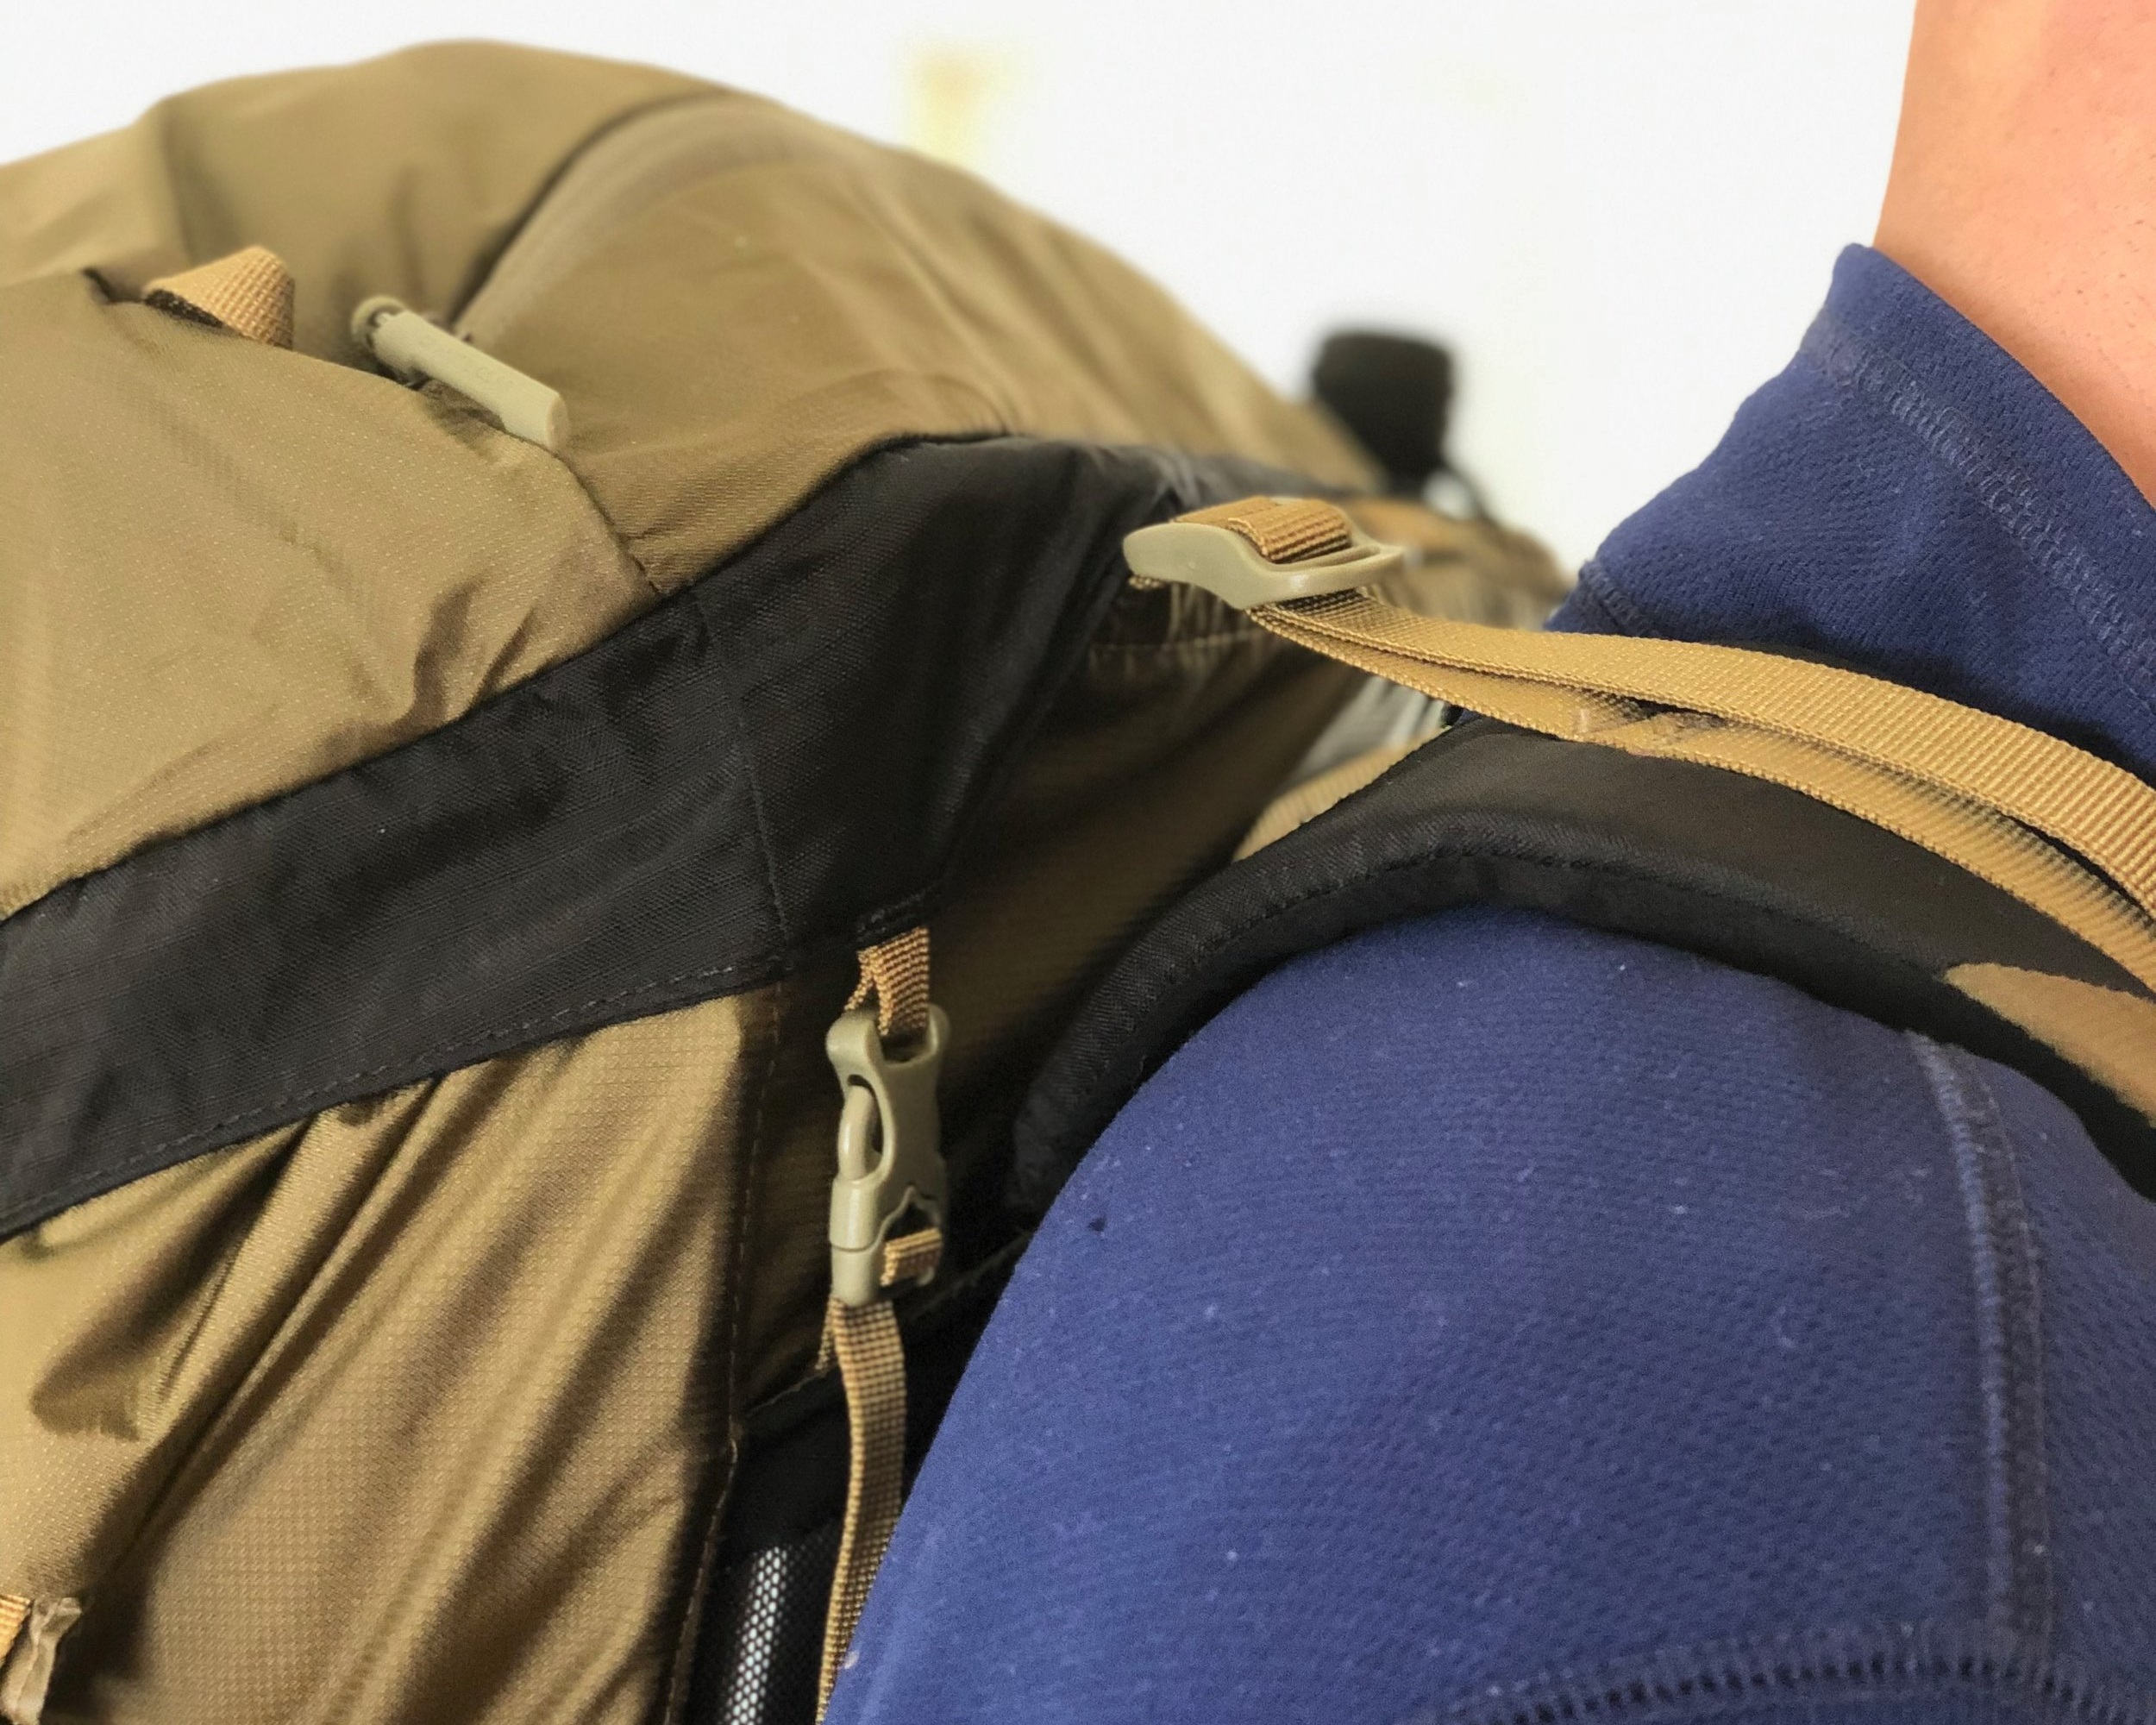 Load lifters on a backpack as viewed from the side.